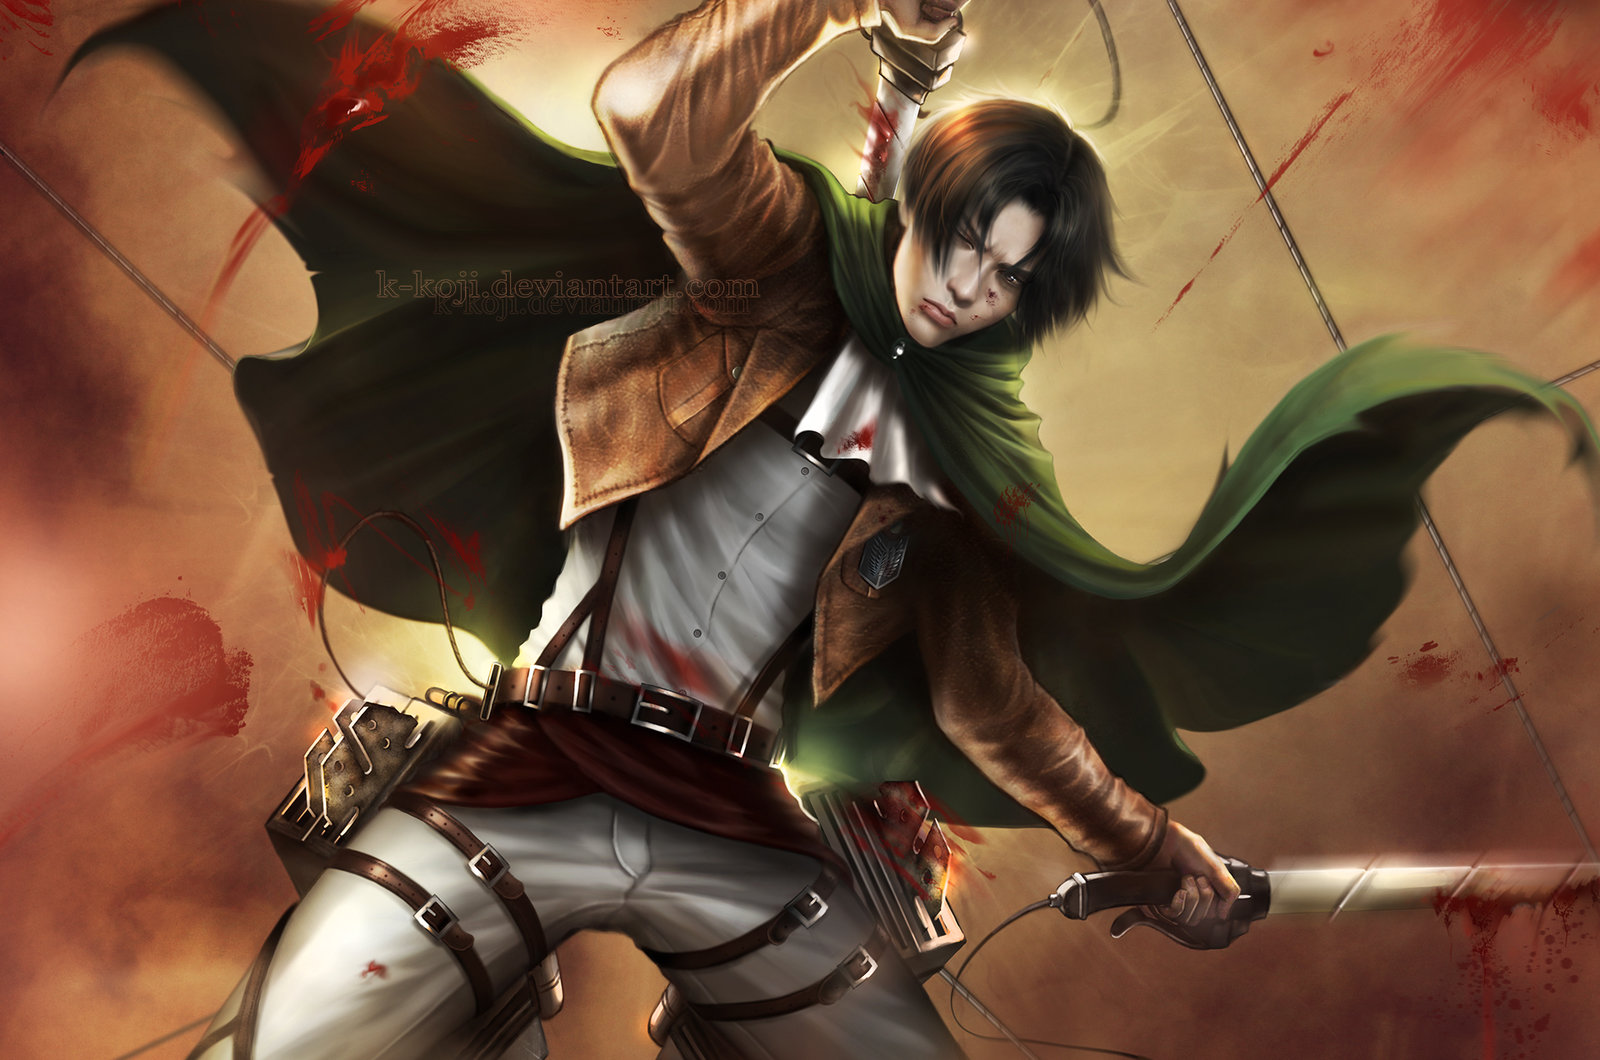 aot captain levi wallpaper by k koji customization wallpaper hdtv 1600x1060